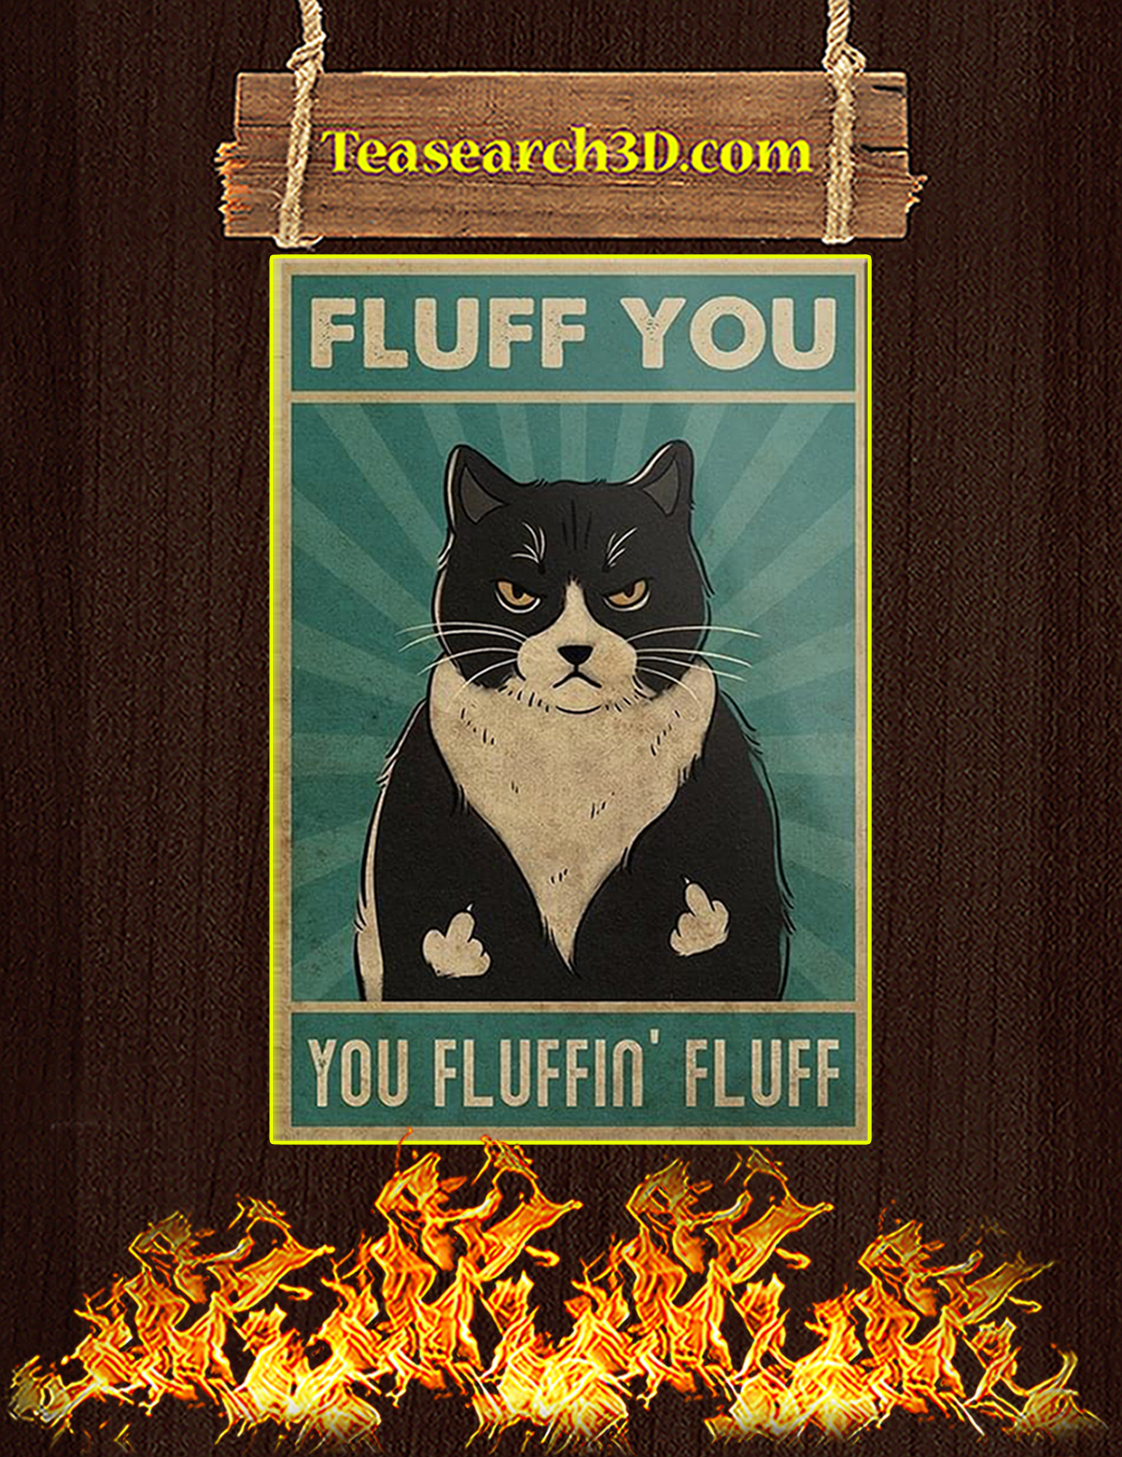 Cat fluff you poster A3